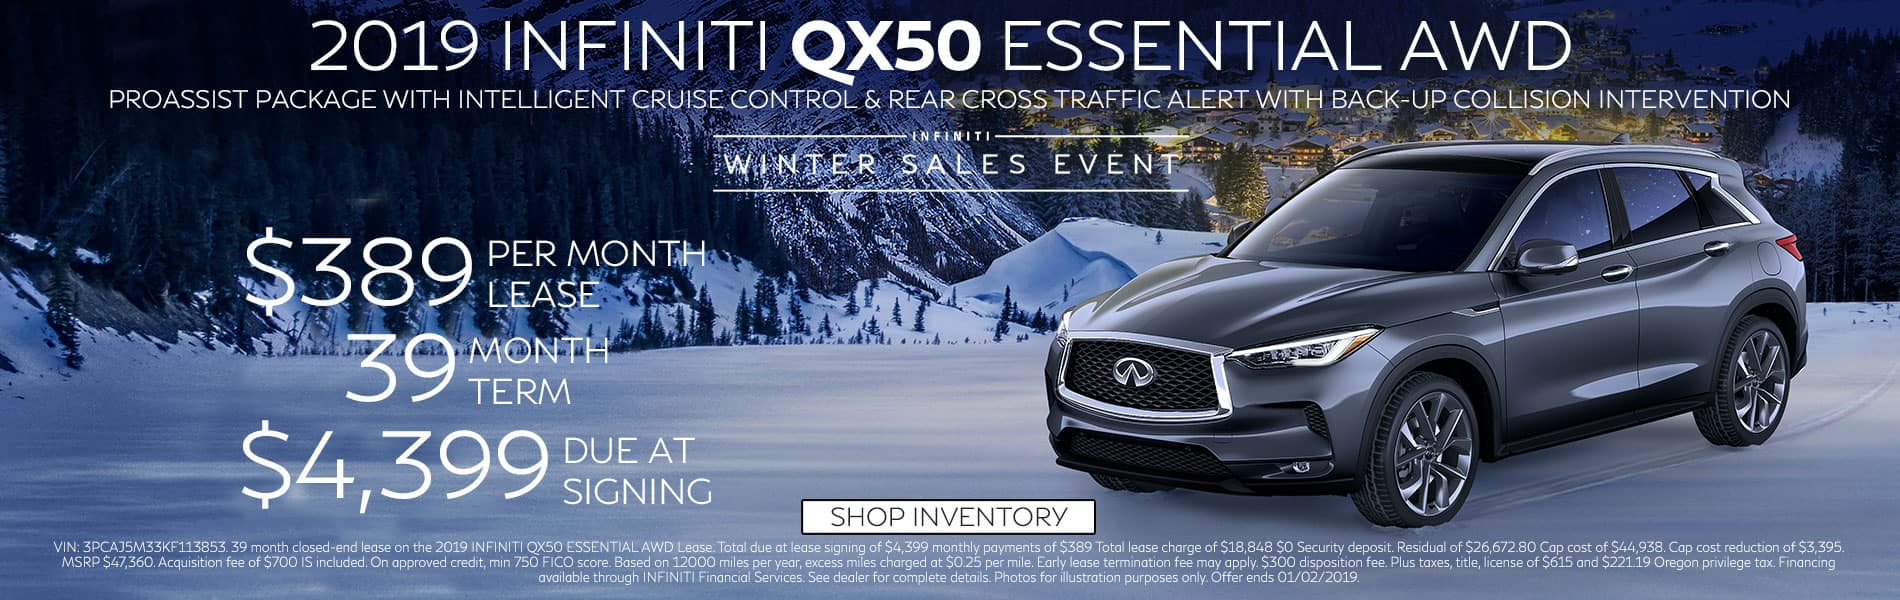 Lease a 2019 QX50 ESSENTIAL AWD for $389 per month with $4,399 due at signing